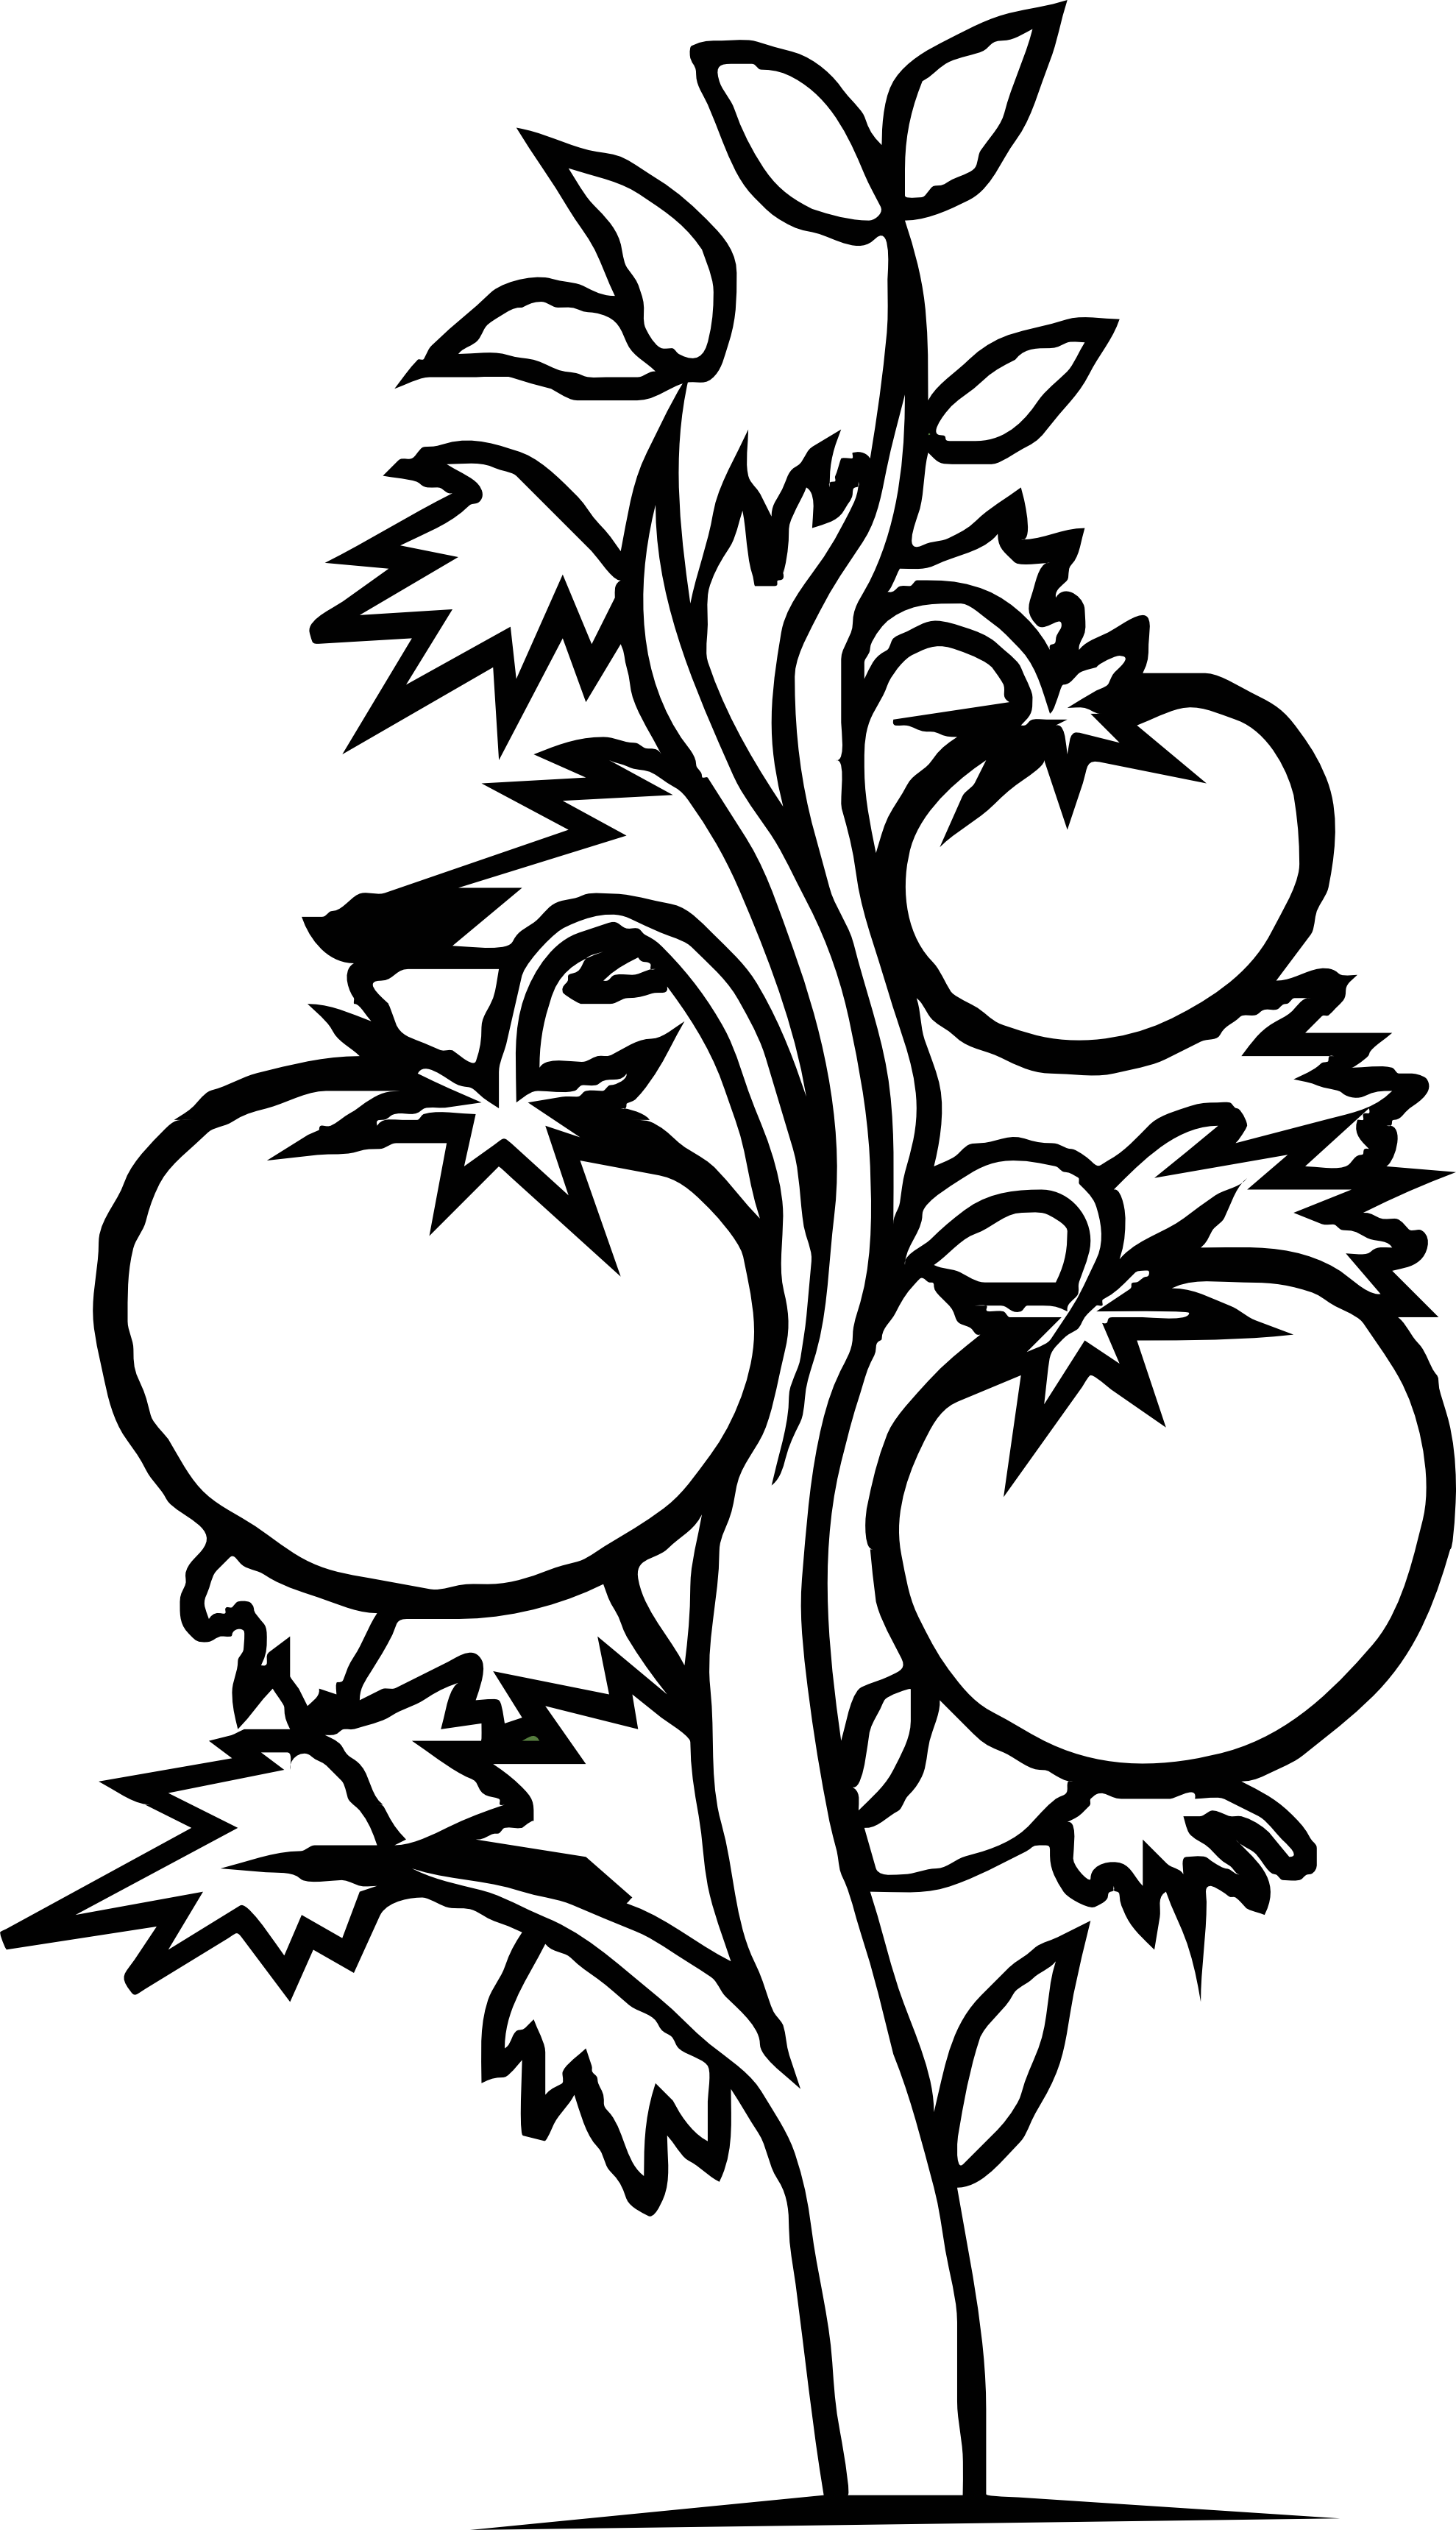 Pumpkin vine black and white clipart jpg freeuse Plant Clipart Black And White | Clipart Panda - Free Clipart Images jpg freeuse